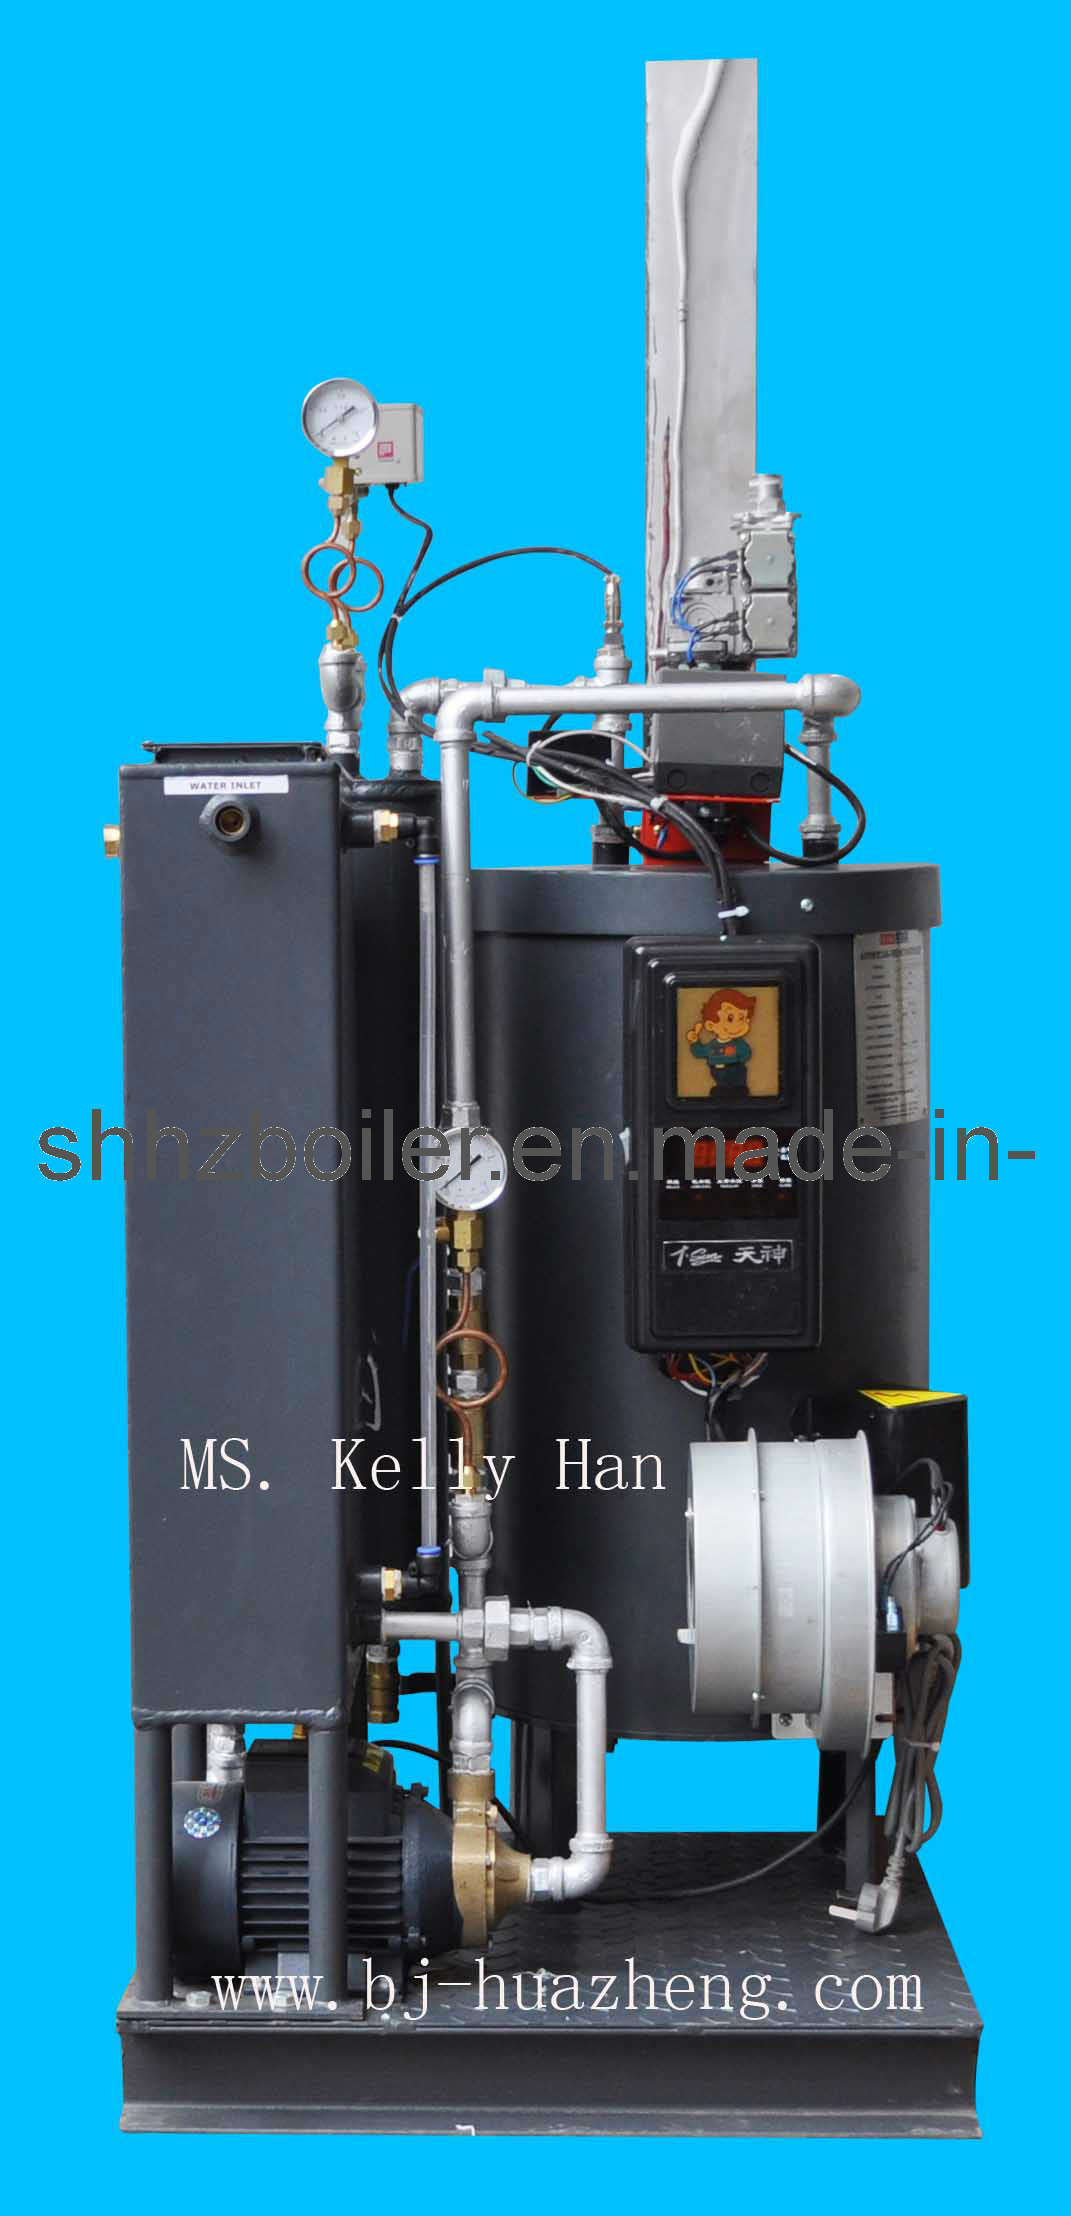 China 70kw Coil Tube Oil Fired Hot Water Boiler - China Boiler, Oil ...